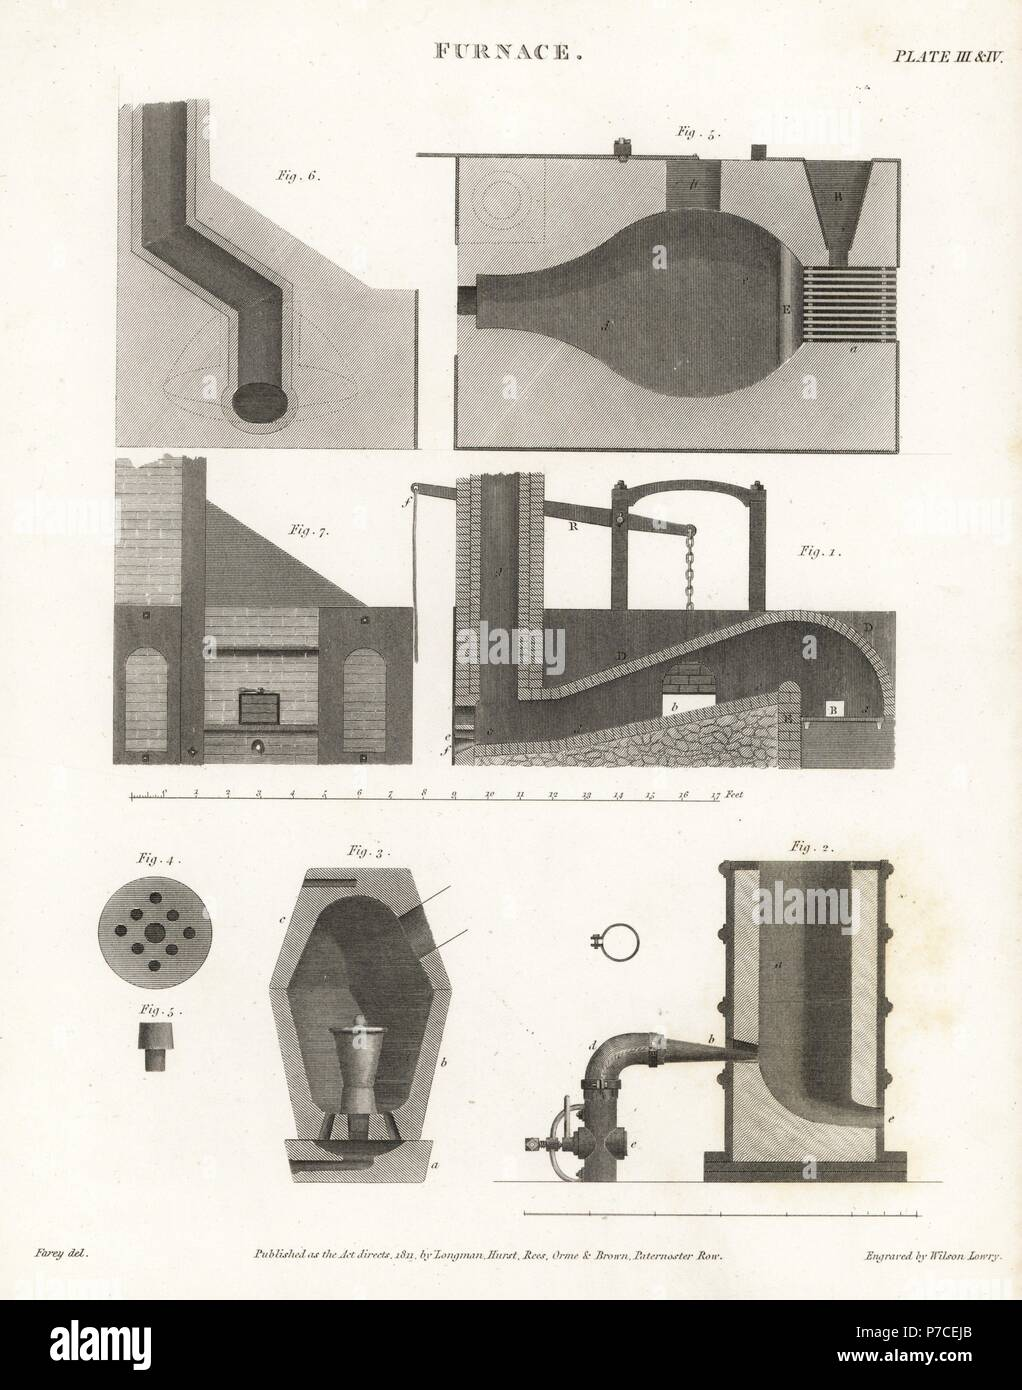 plans and elevations for a furnace early 19th century copperplate